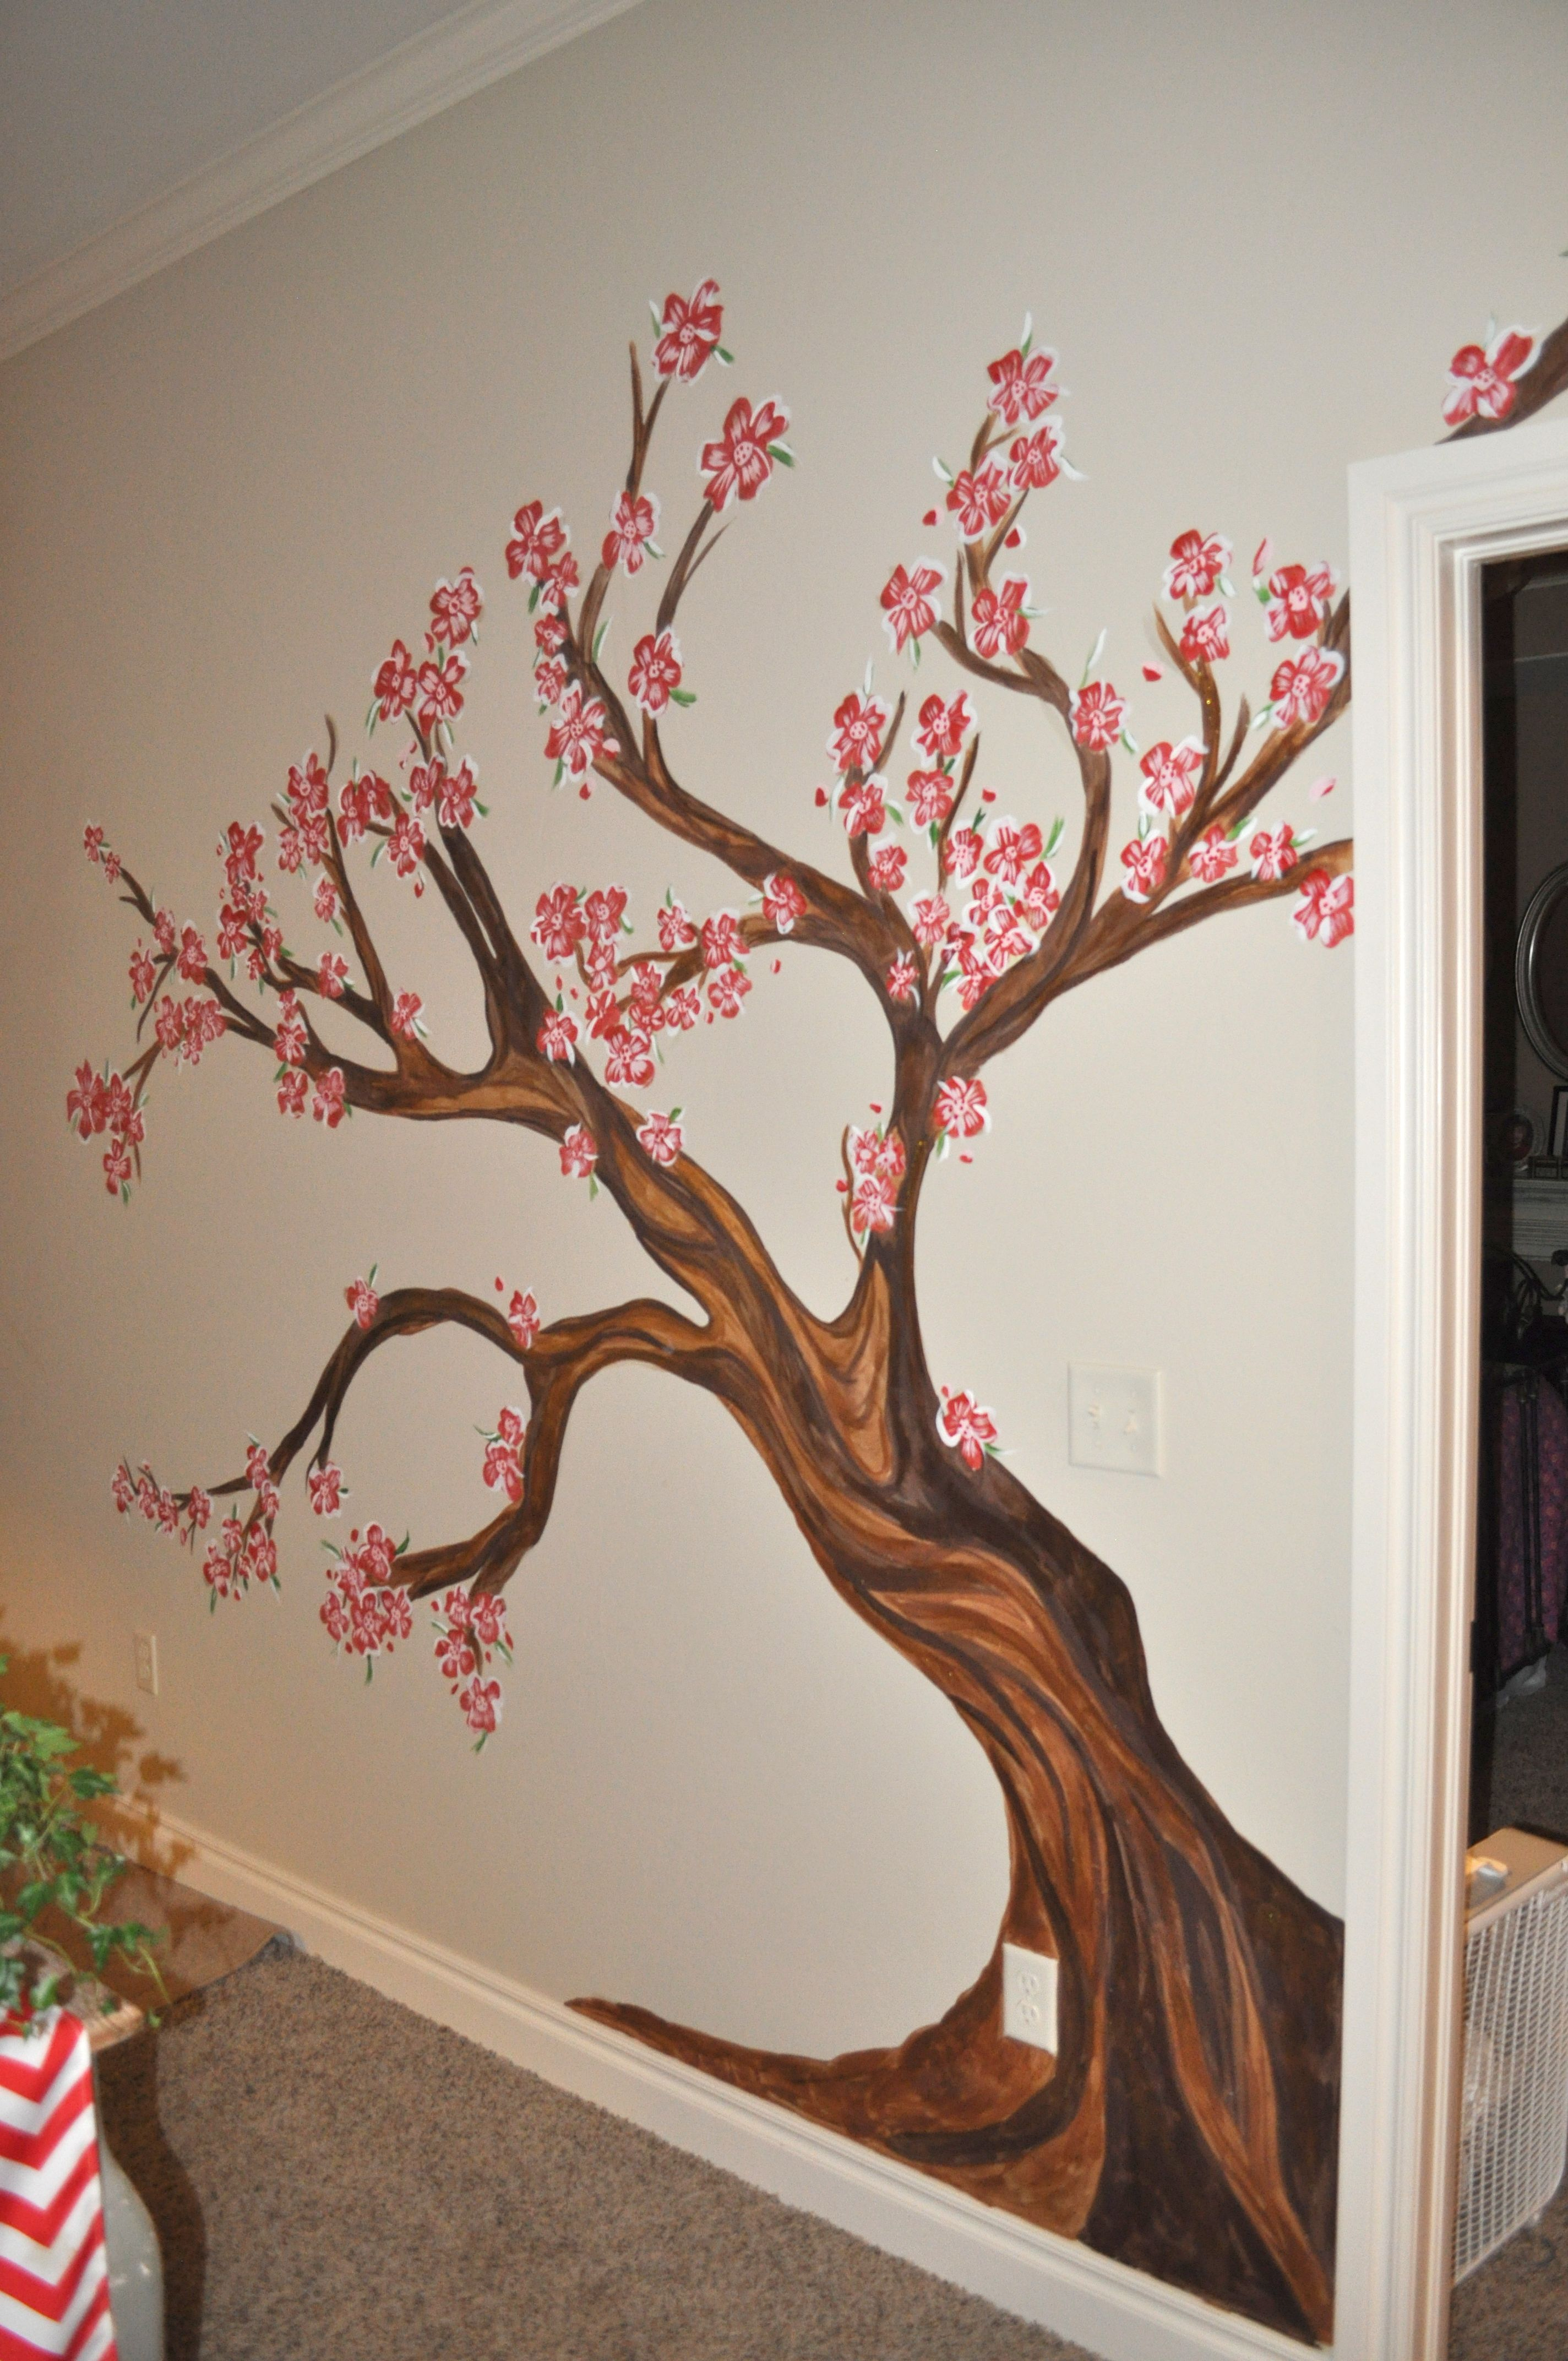 Cherry Blosson Tree In Living Room Mural By Sharon Mcbride Of All That Nonsense Tree Wall Painting Room Wall Painting Wall Paint Designs